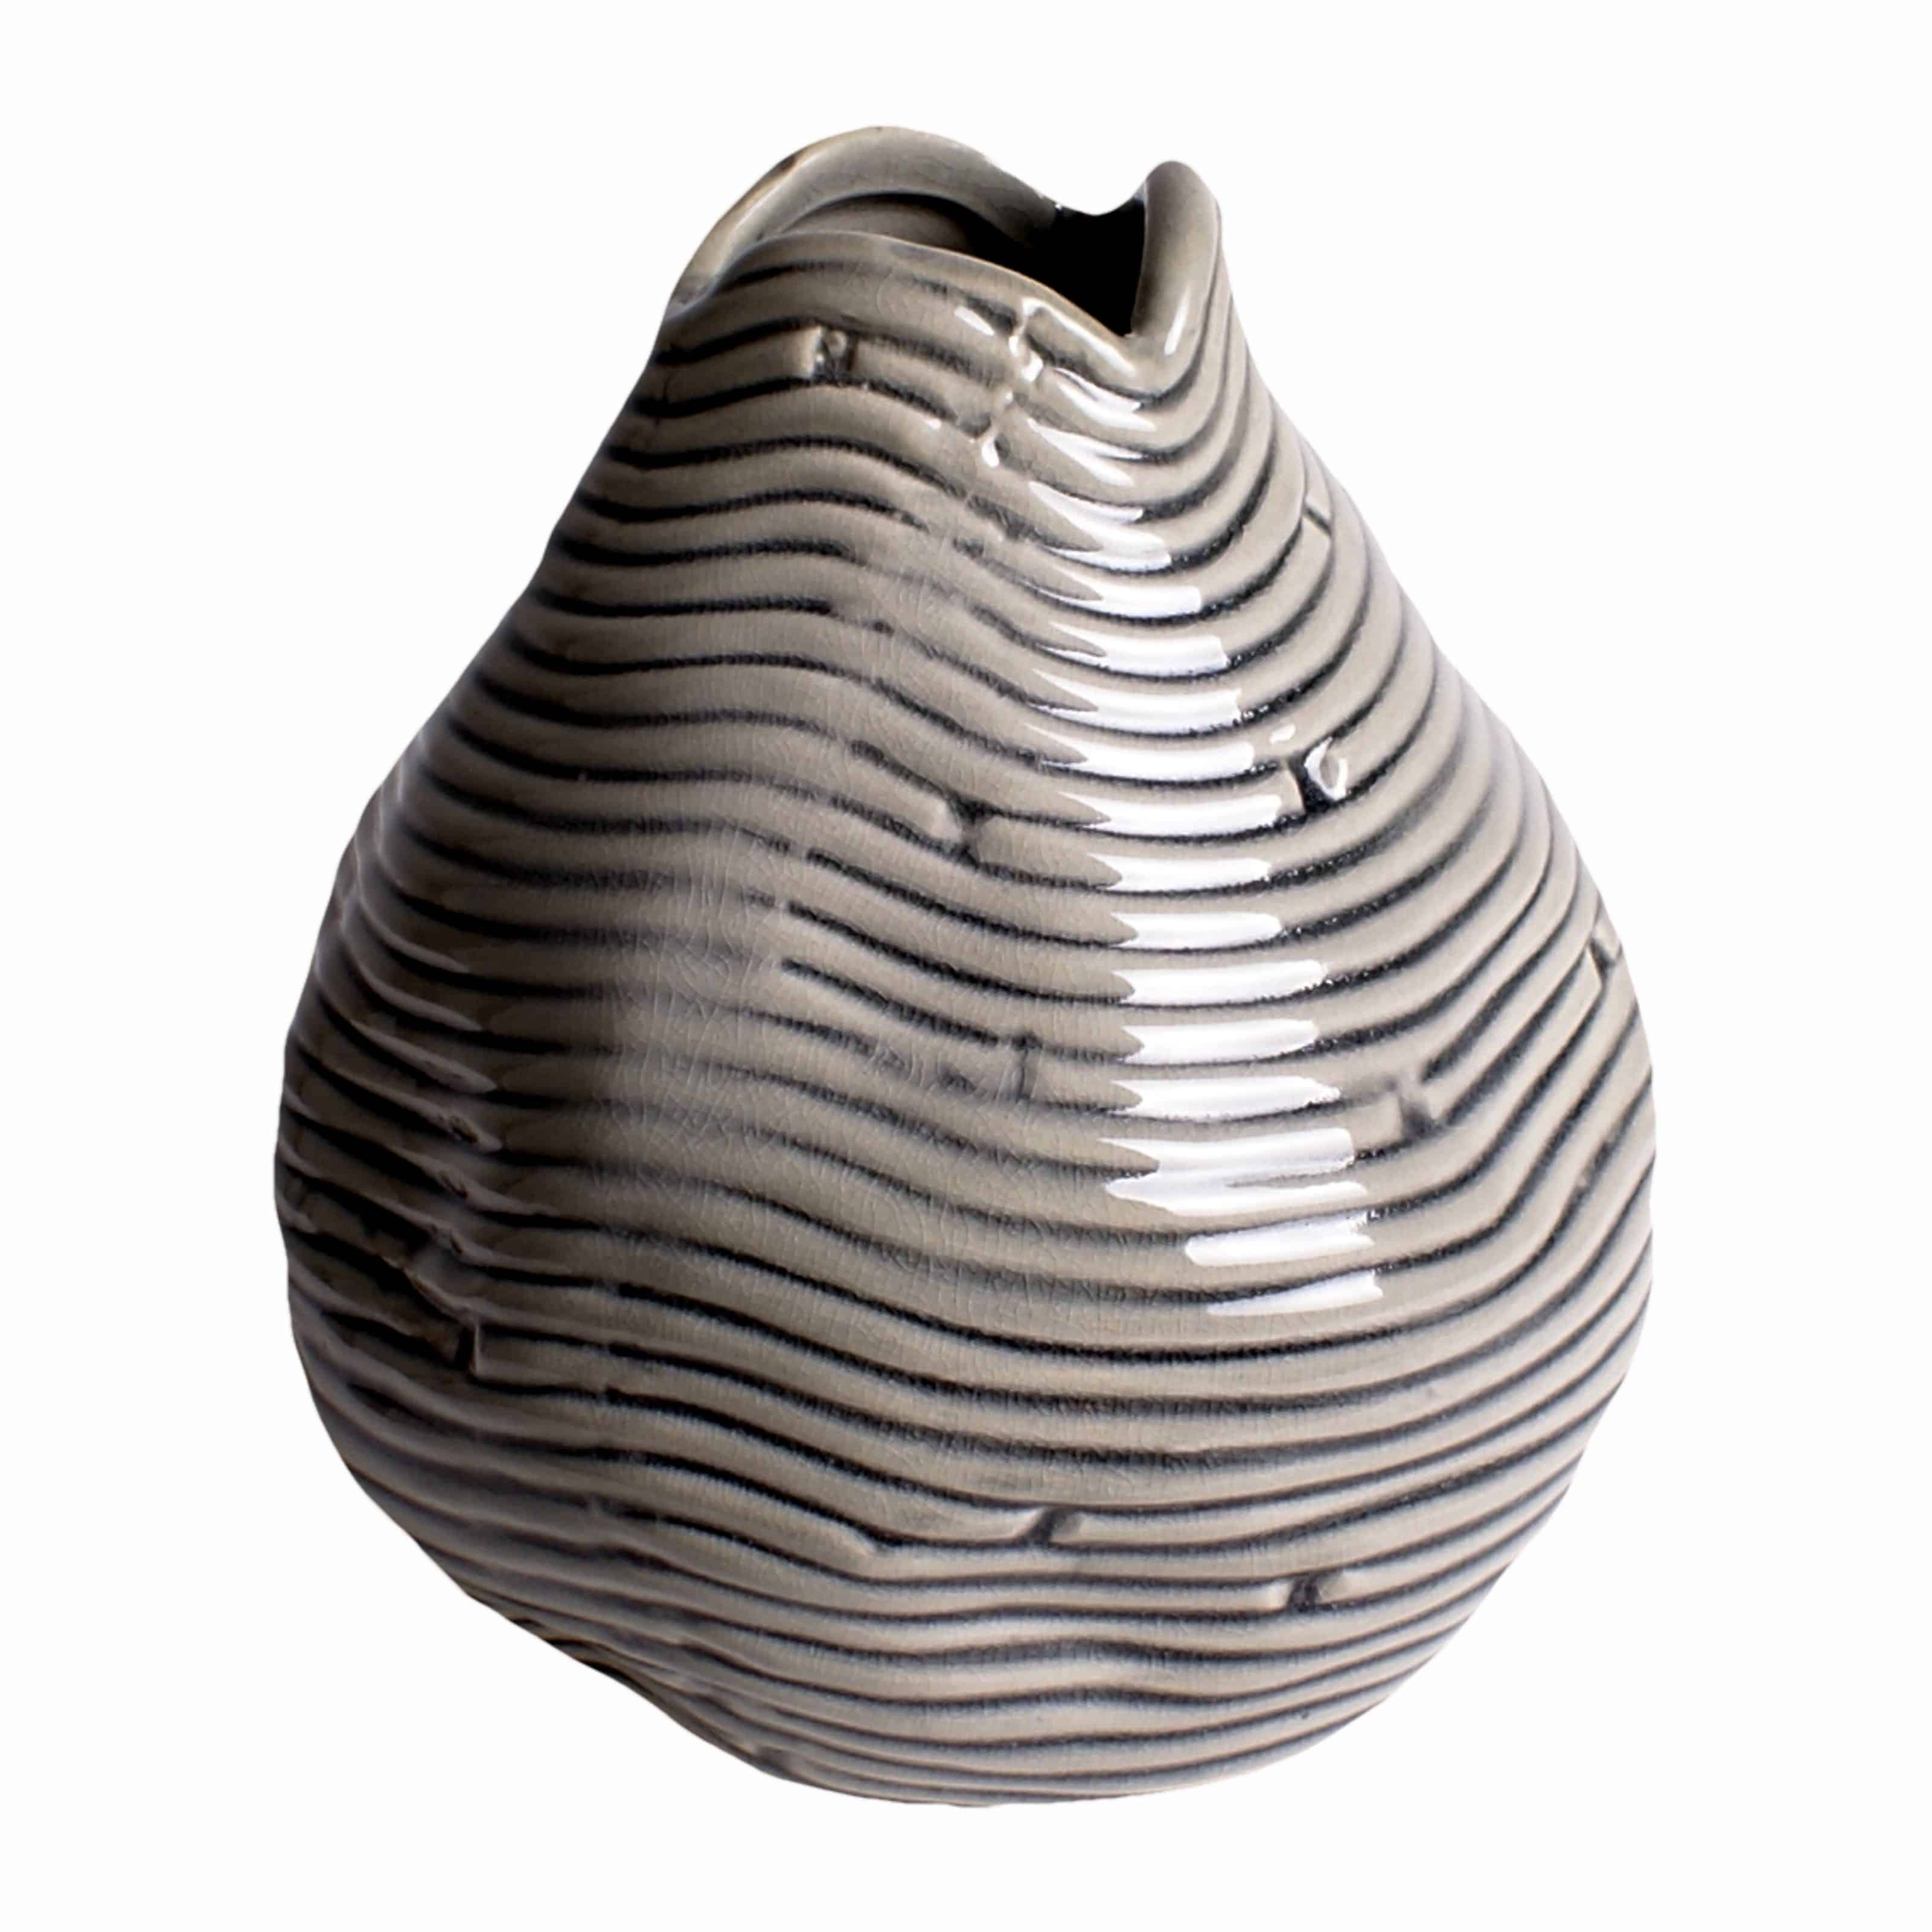 Buy our unique teardrop handmade vase. A decorative grey design creating differing shades Perfect for a few silk flower stems or branches for stylish decor.